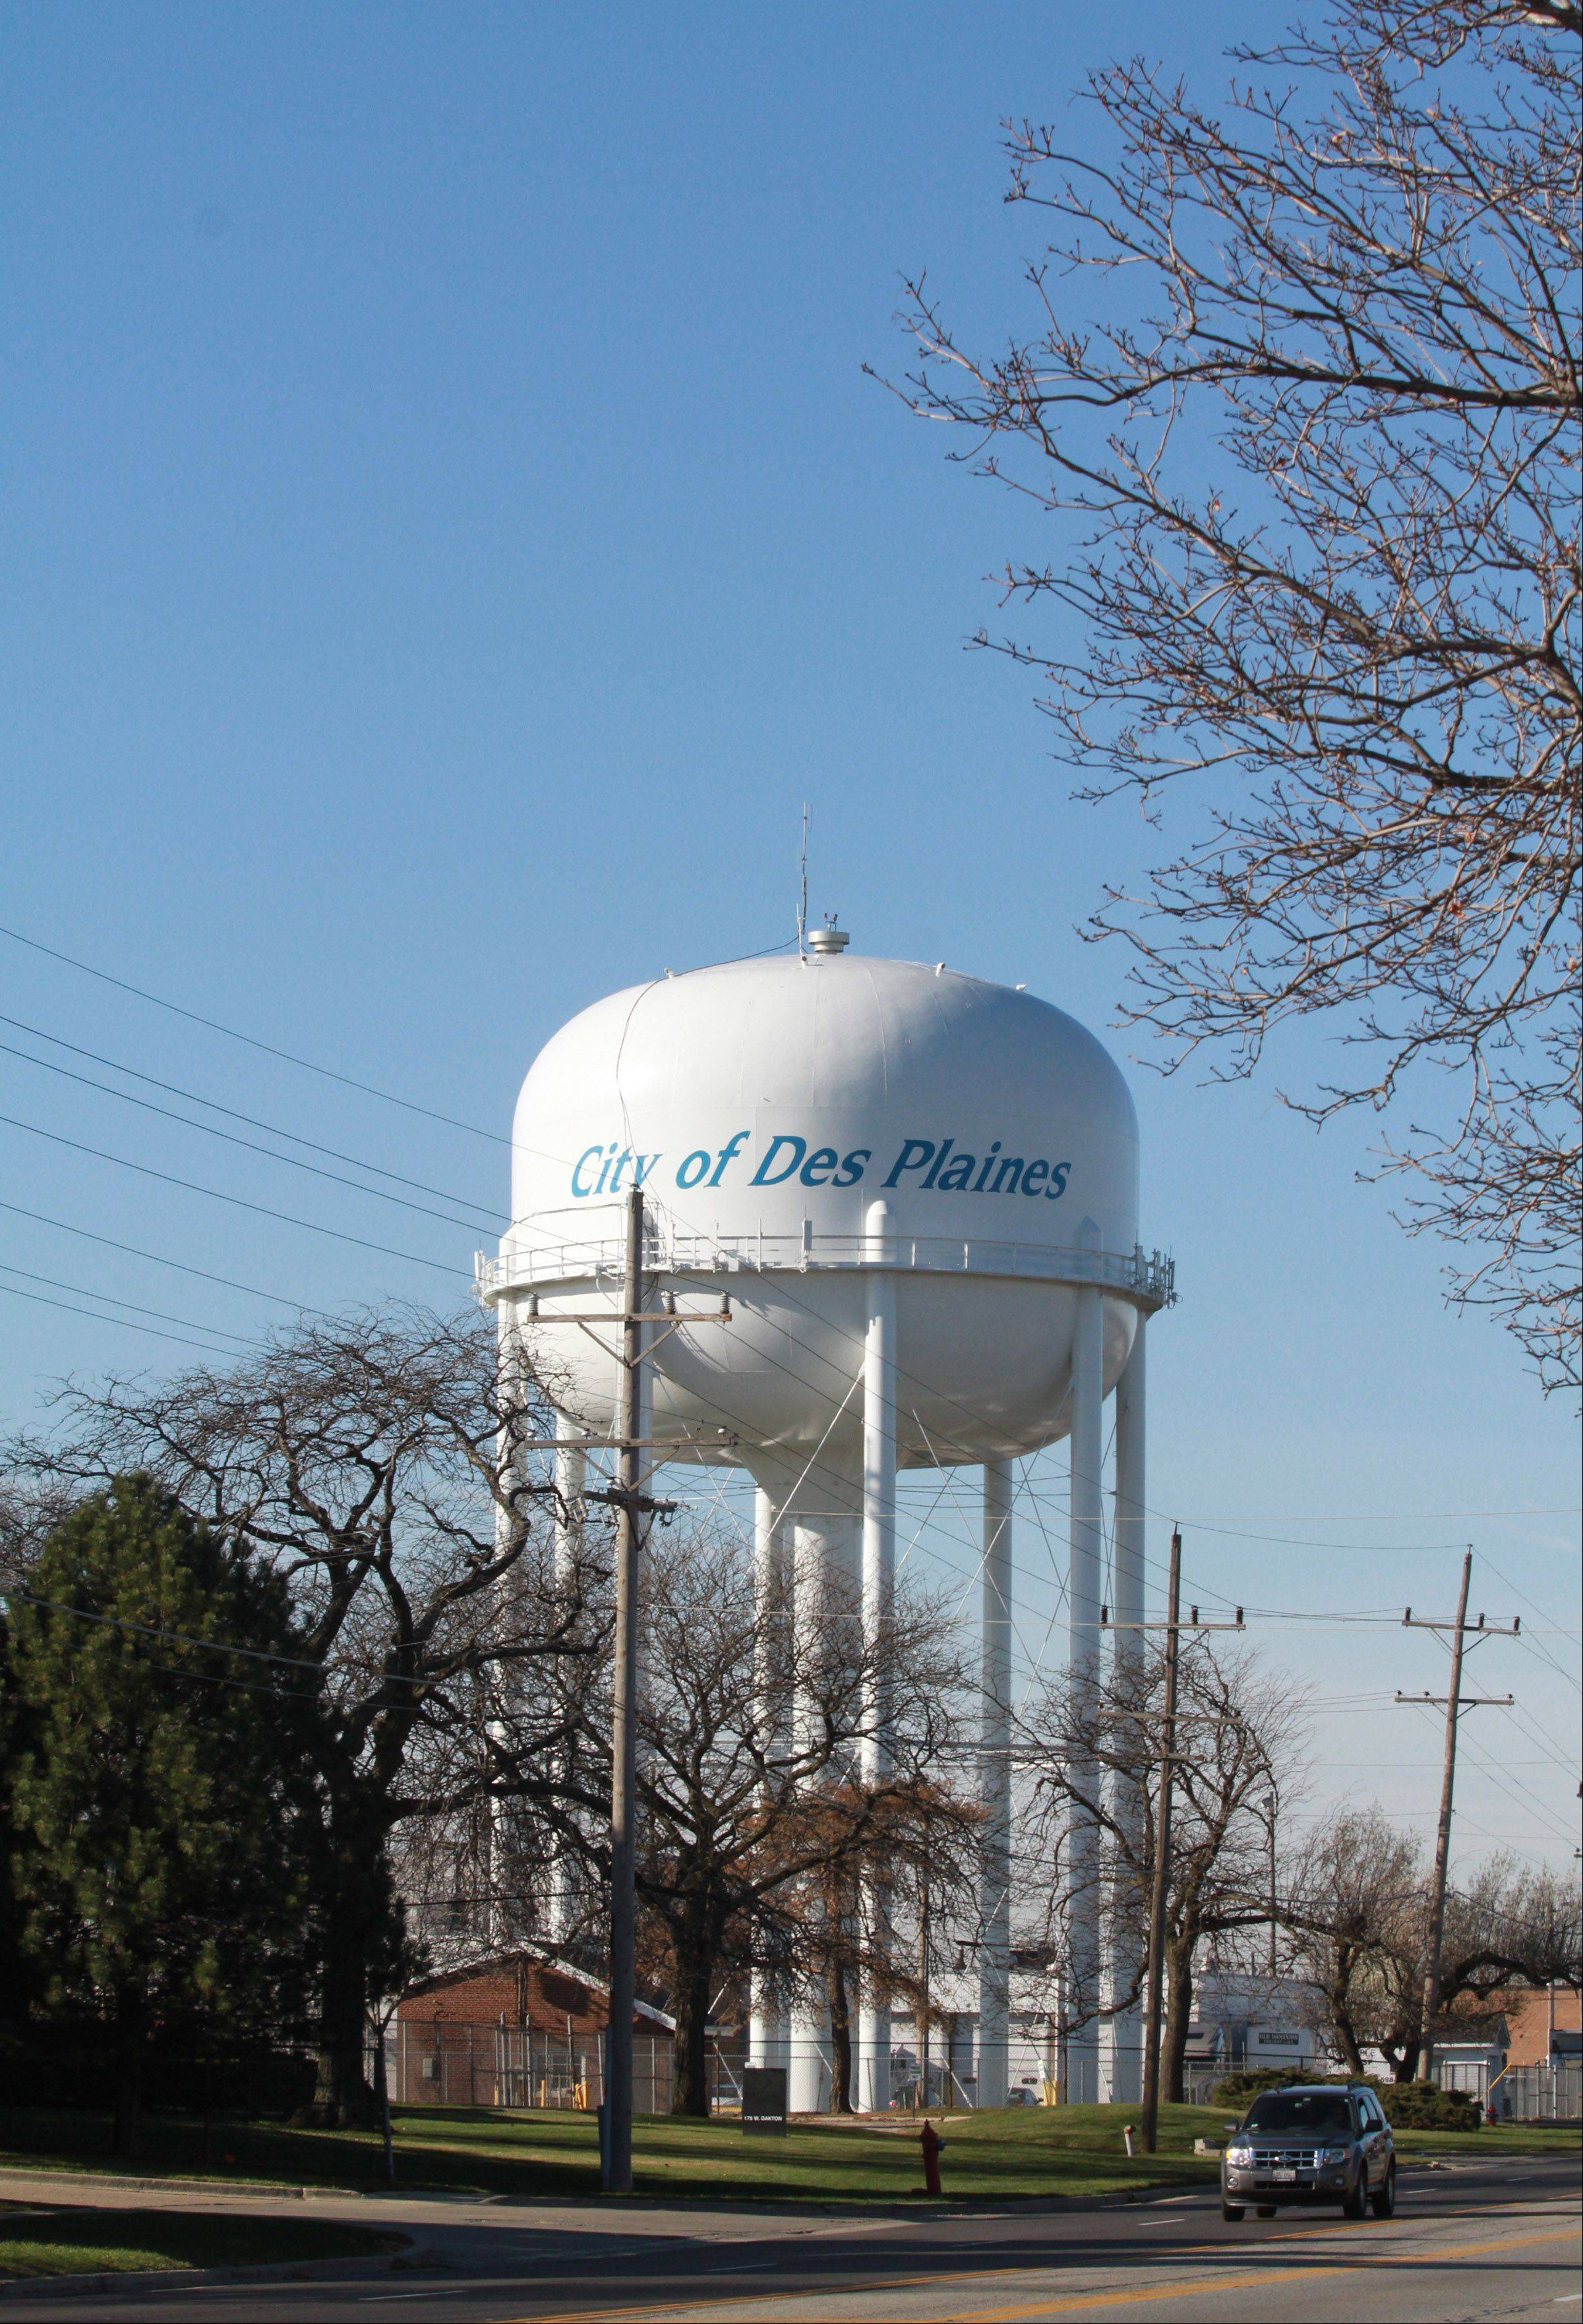 Water rate hike on tap in Des Plaines